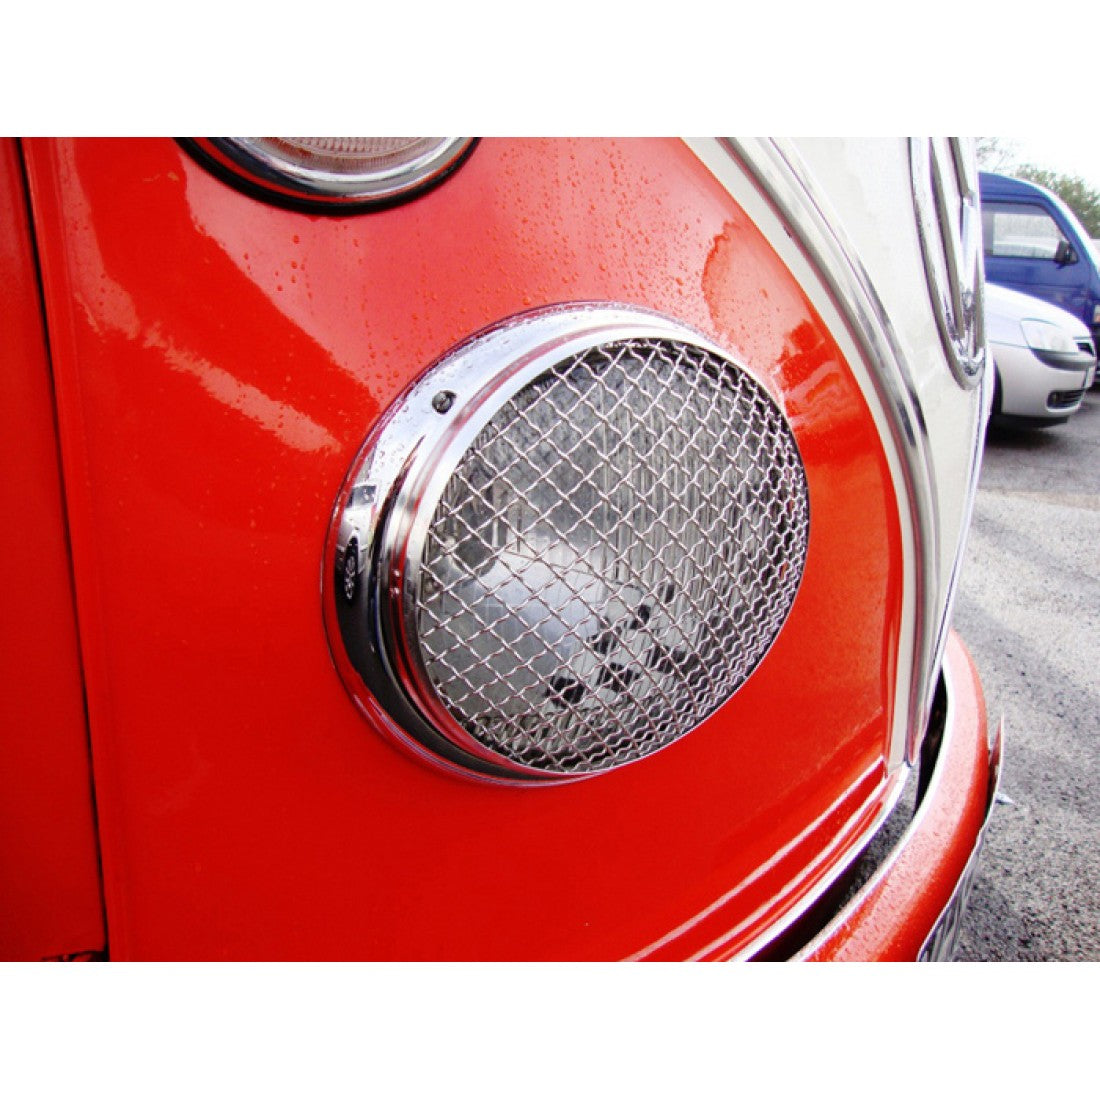 www.aircooledaccessories.com stainless headlight protectors AAC003